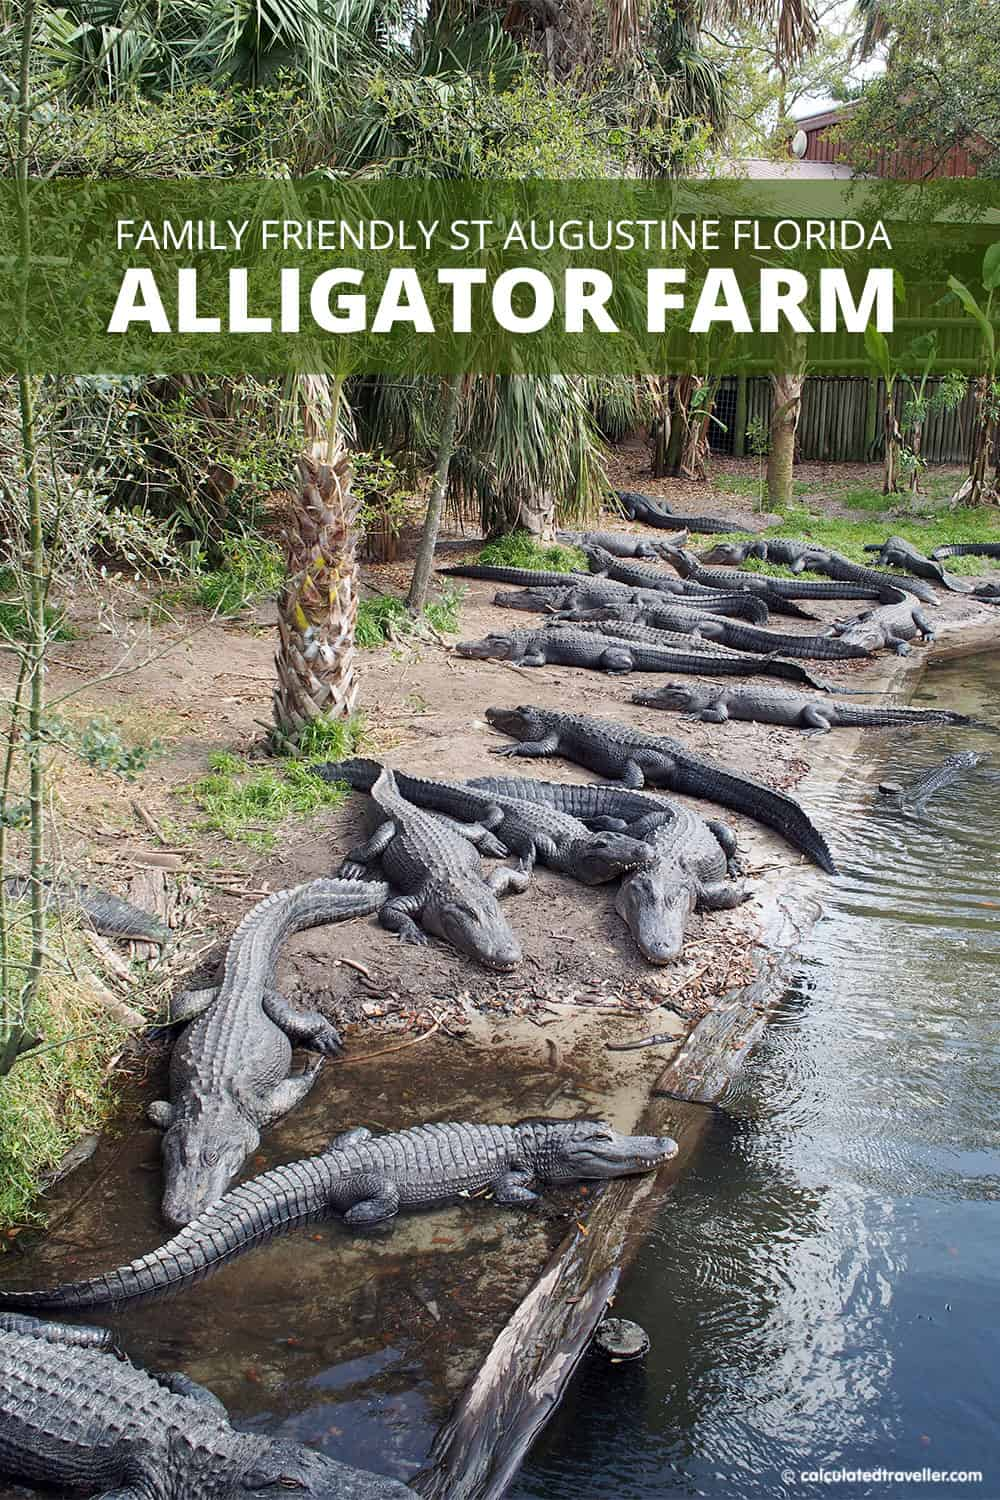 A Traveller's Guide to St Augustine Florida - History and Fun. St. Augustine Alligator Farm and Zoological Park is the prefect family friendly attraction with more than just alligators. #StAugustine #FLorida #family #travel #attraction #children #kids #zoo #animals